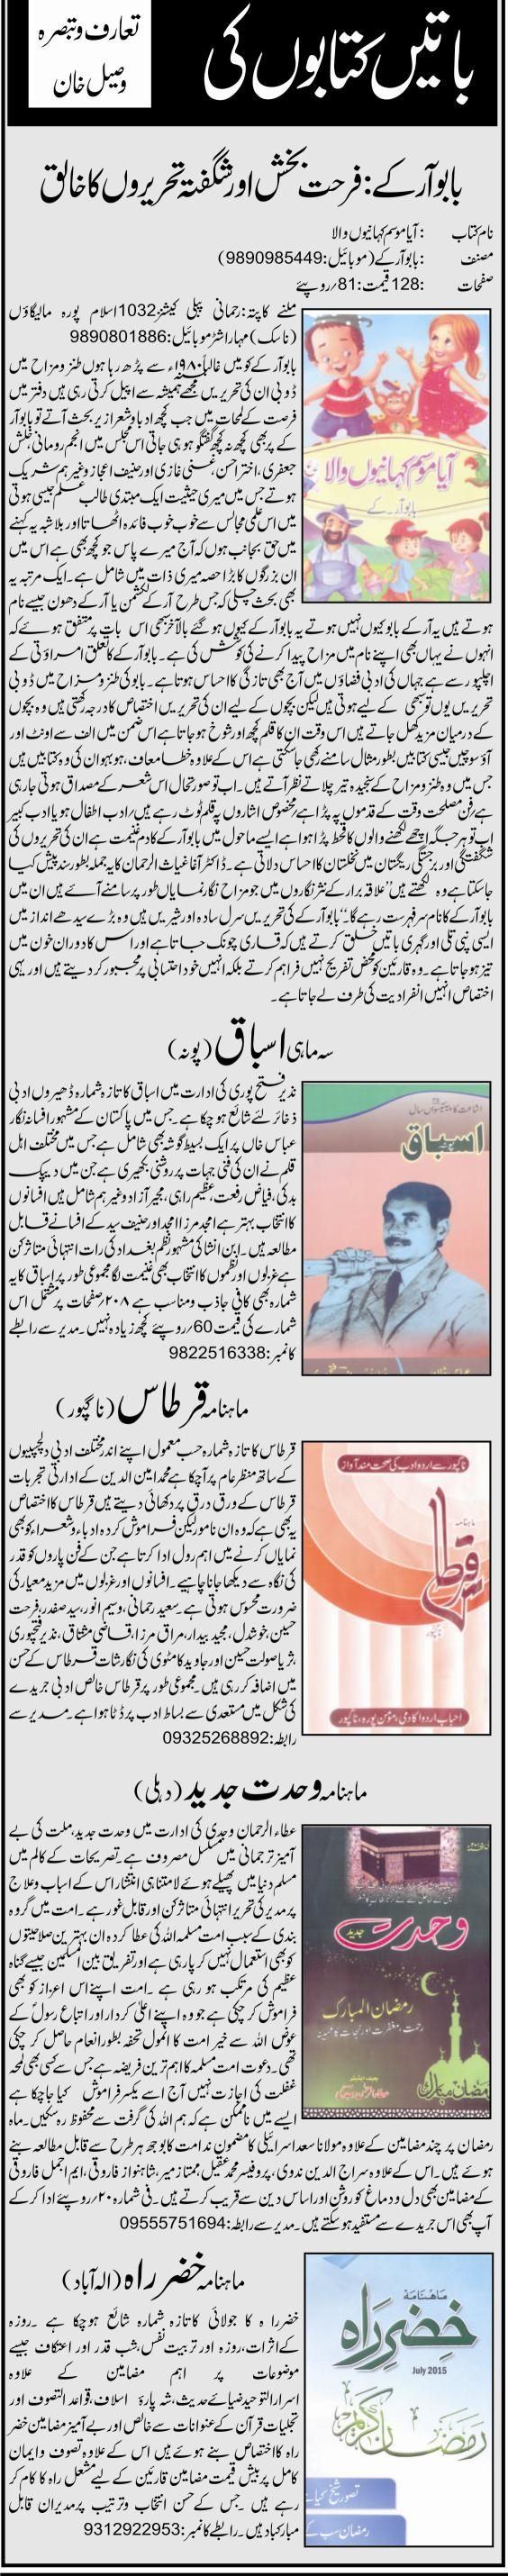 The Urdu Times Daily – India's Leading Daily Urdu News